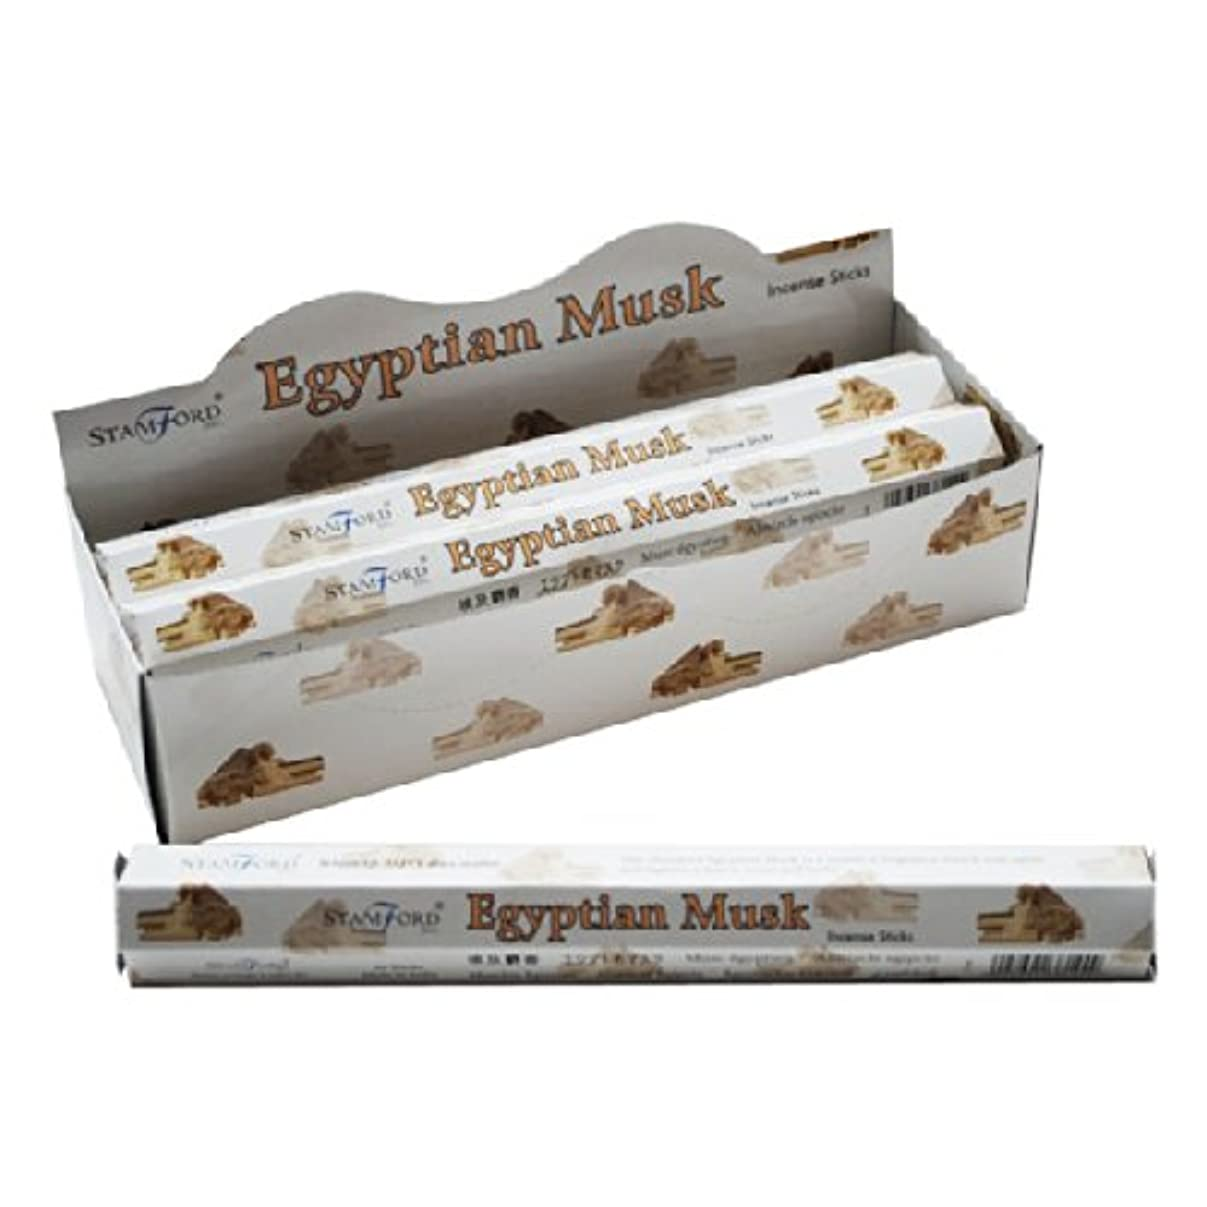 パトロール投資する寝具6 Packs Of Elements Egyptian Musk Incense Sticks